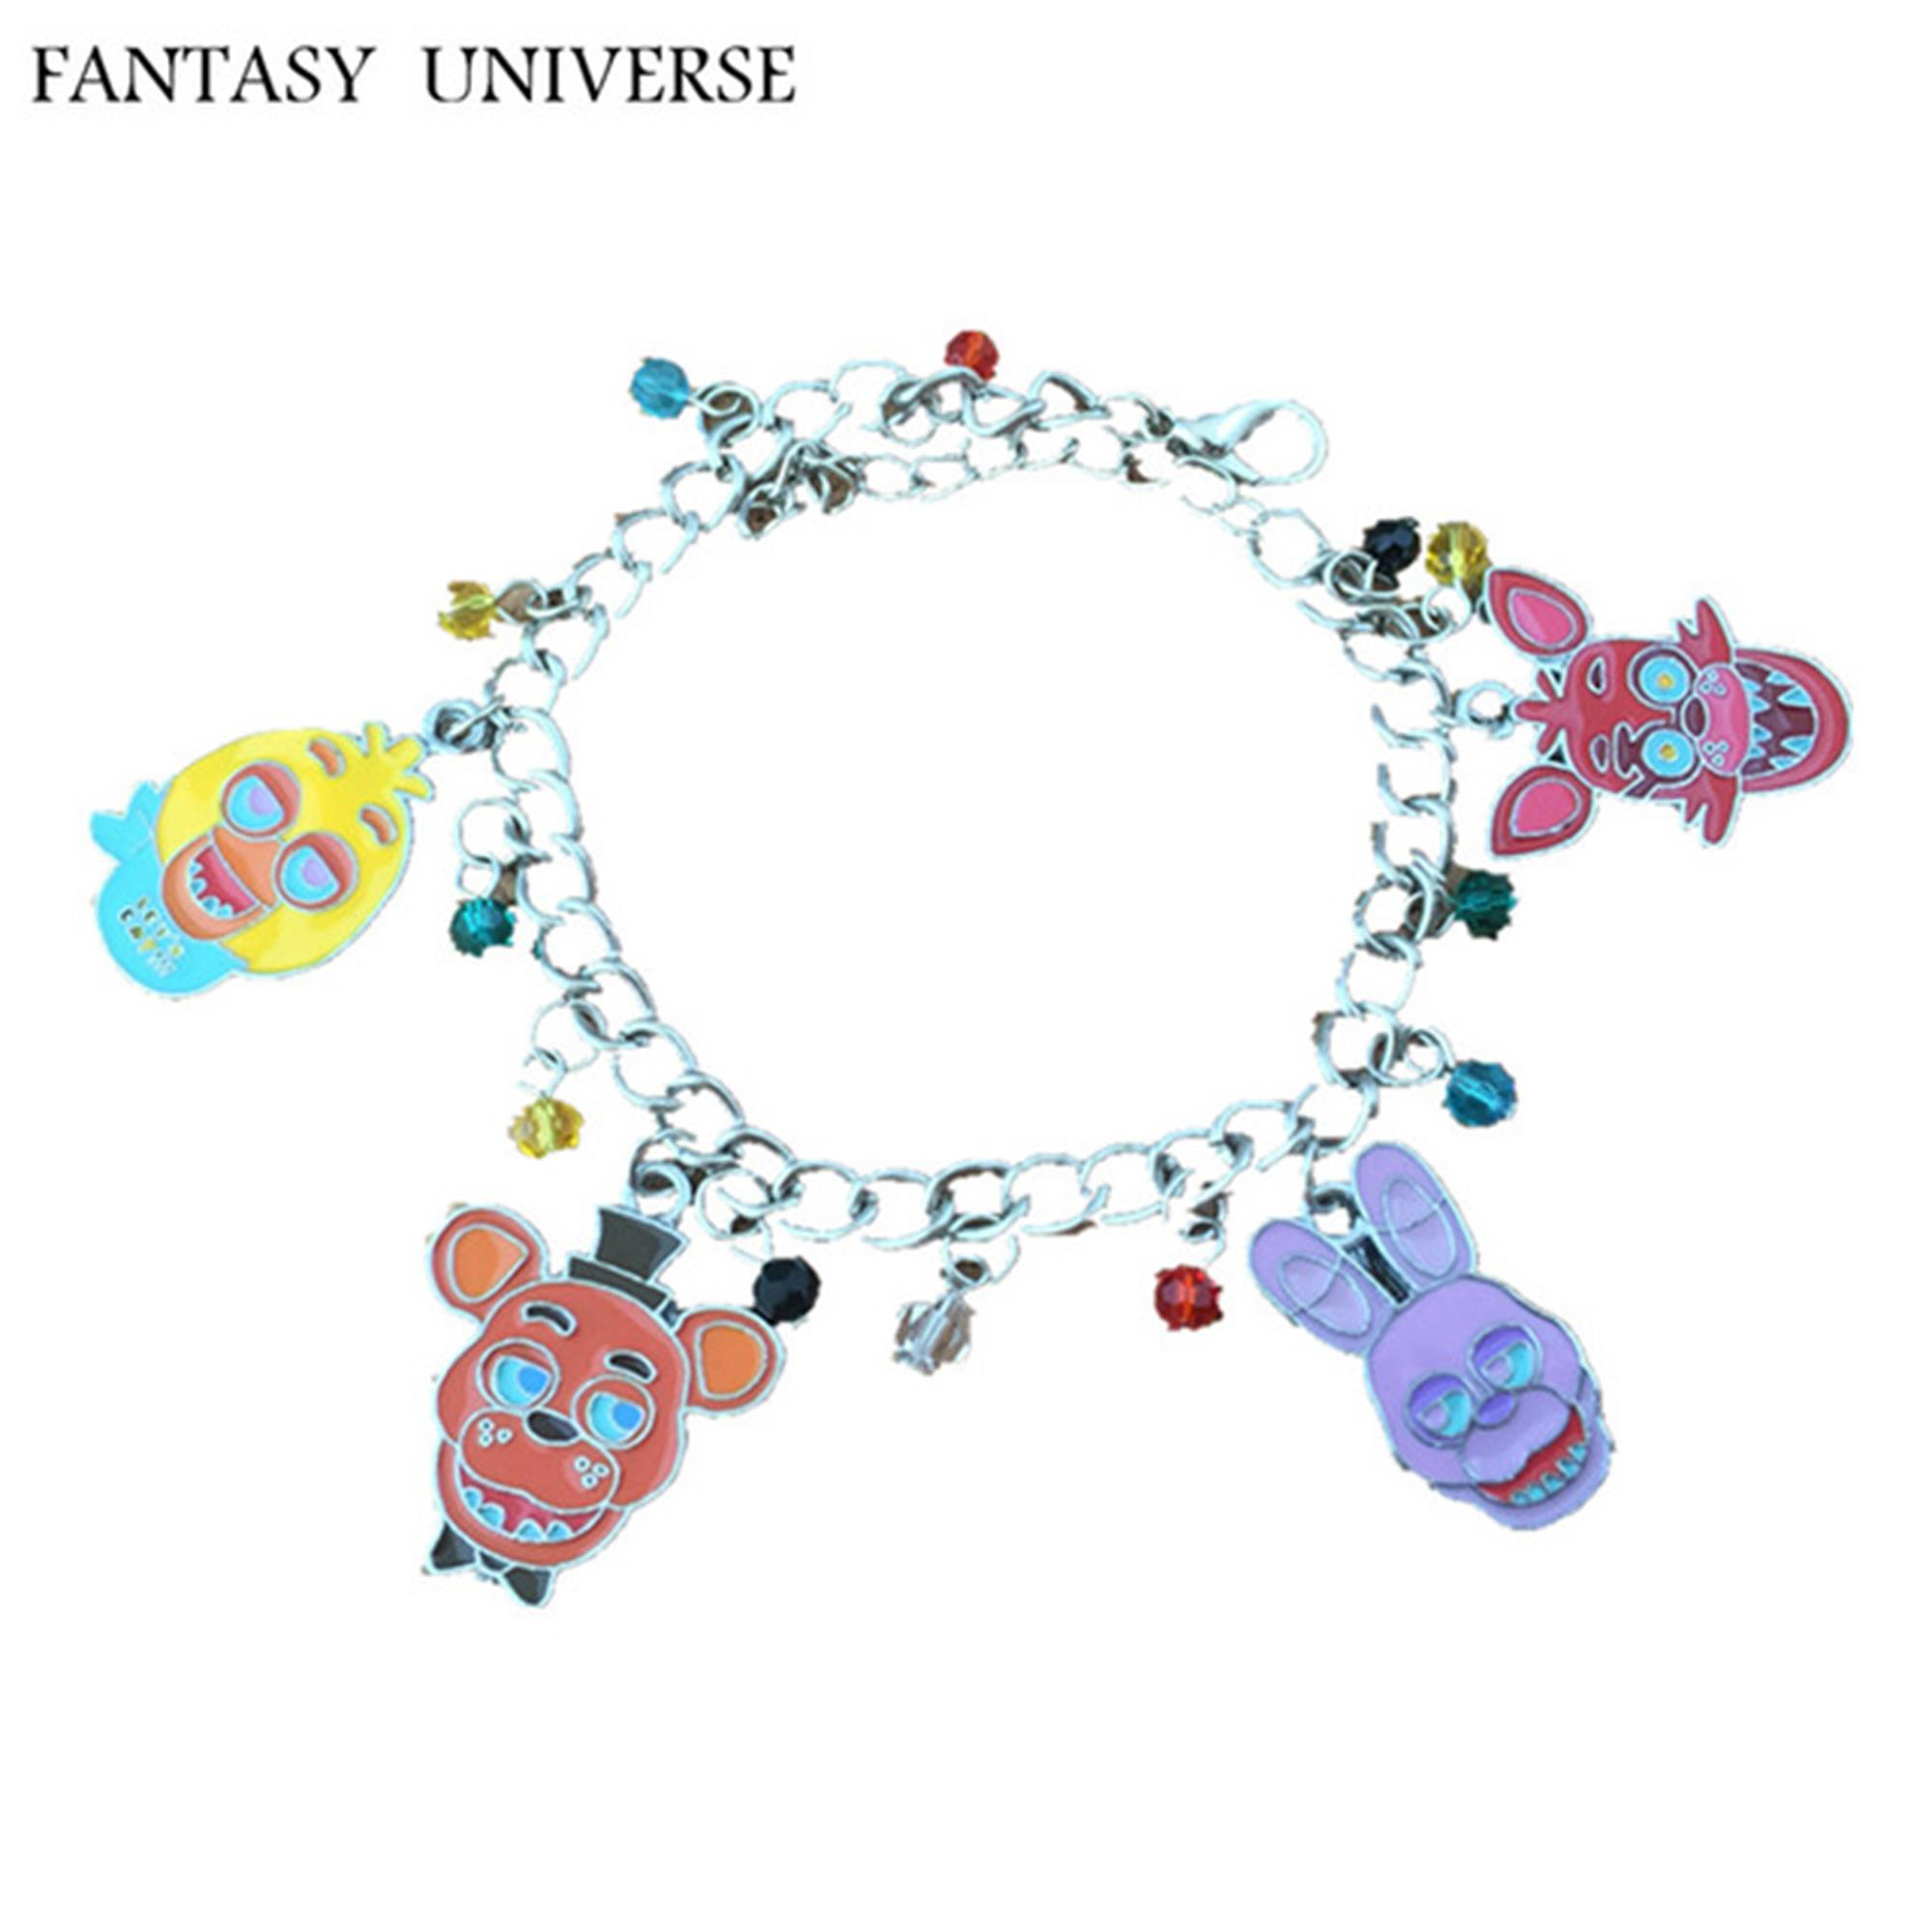 Five Nights At Freddie's 4 Charms Lobster Clasp Bracelet in Gift Box by Superheroes by